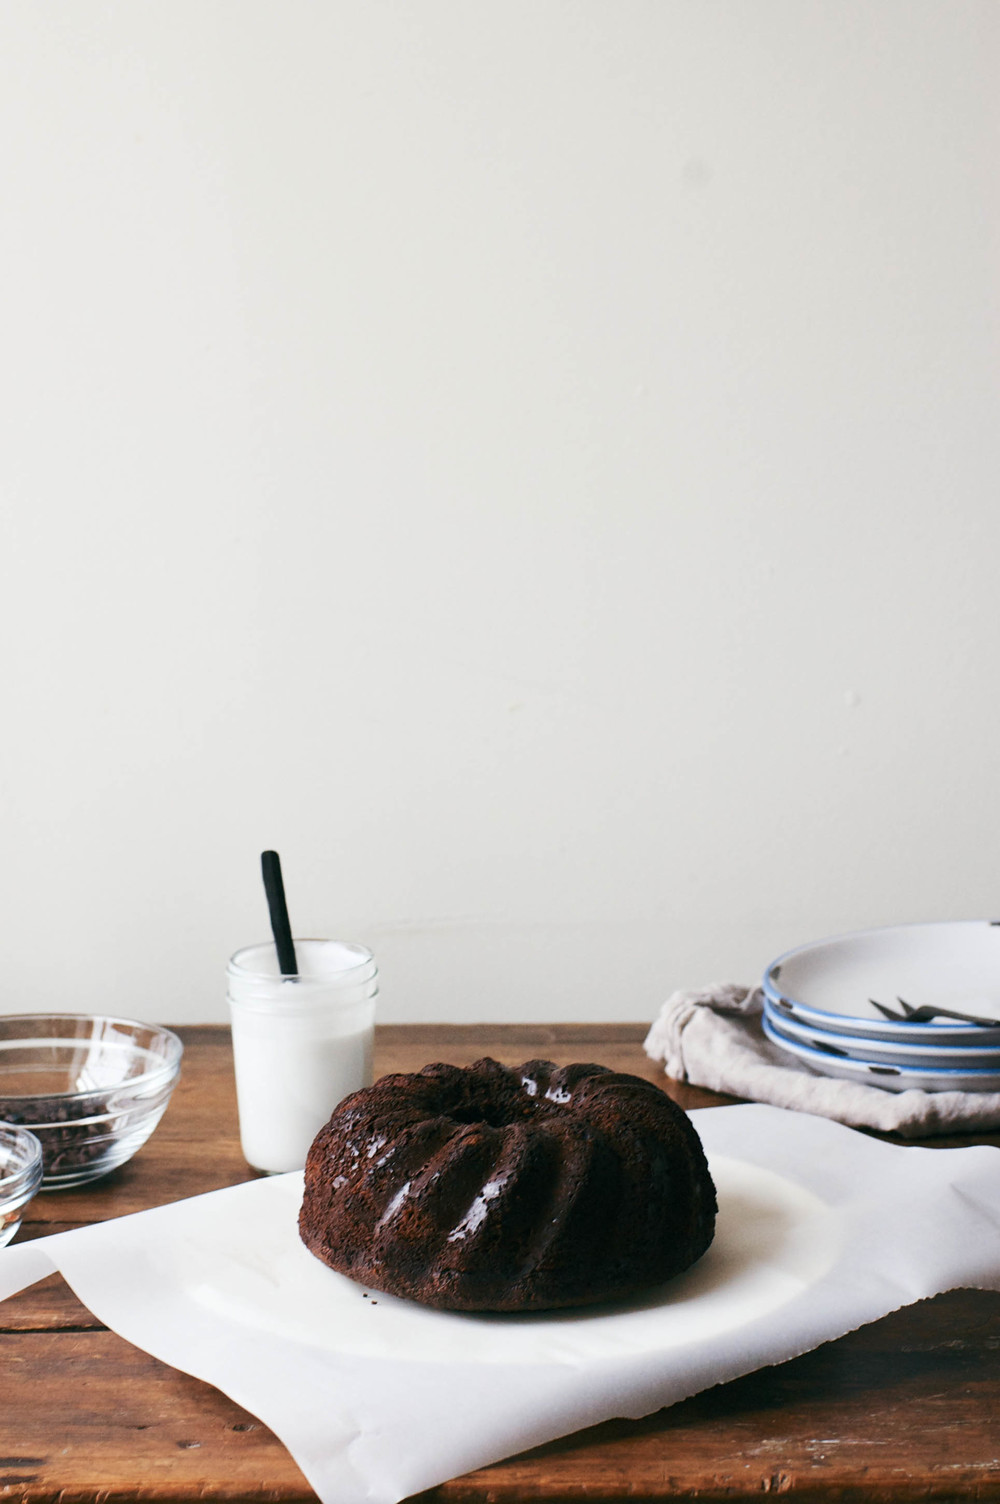 olive oil choc. bundt